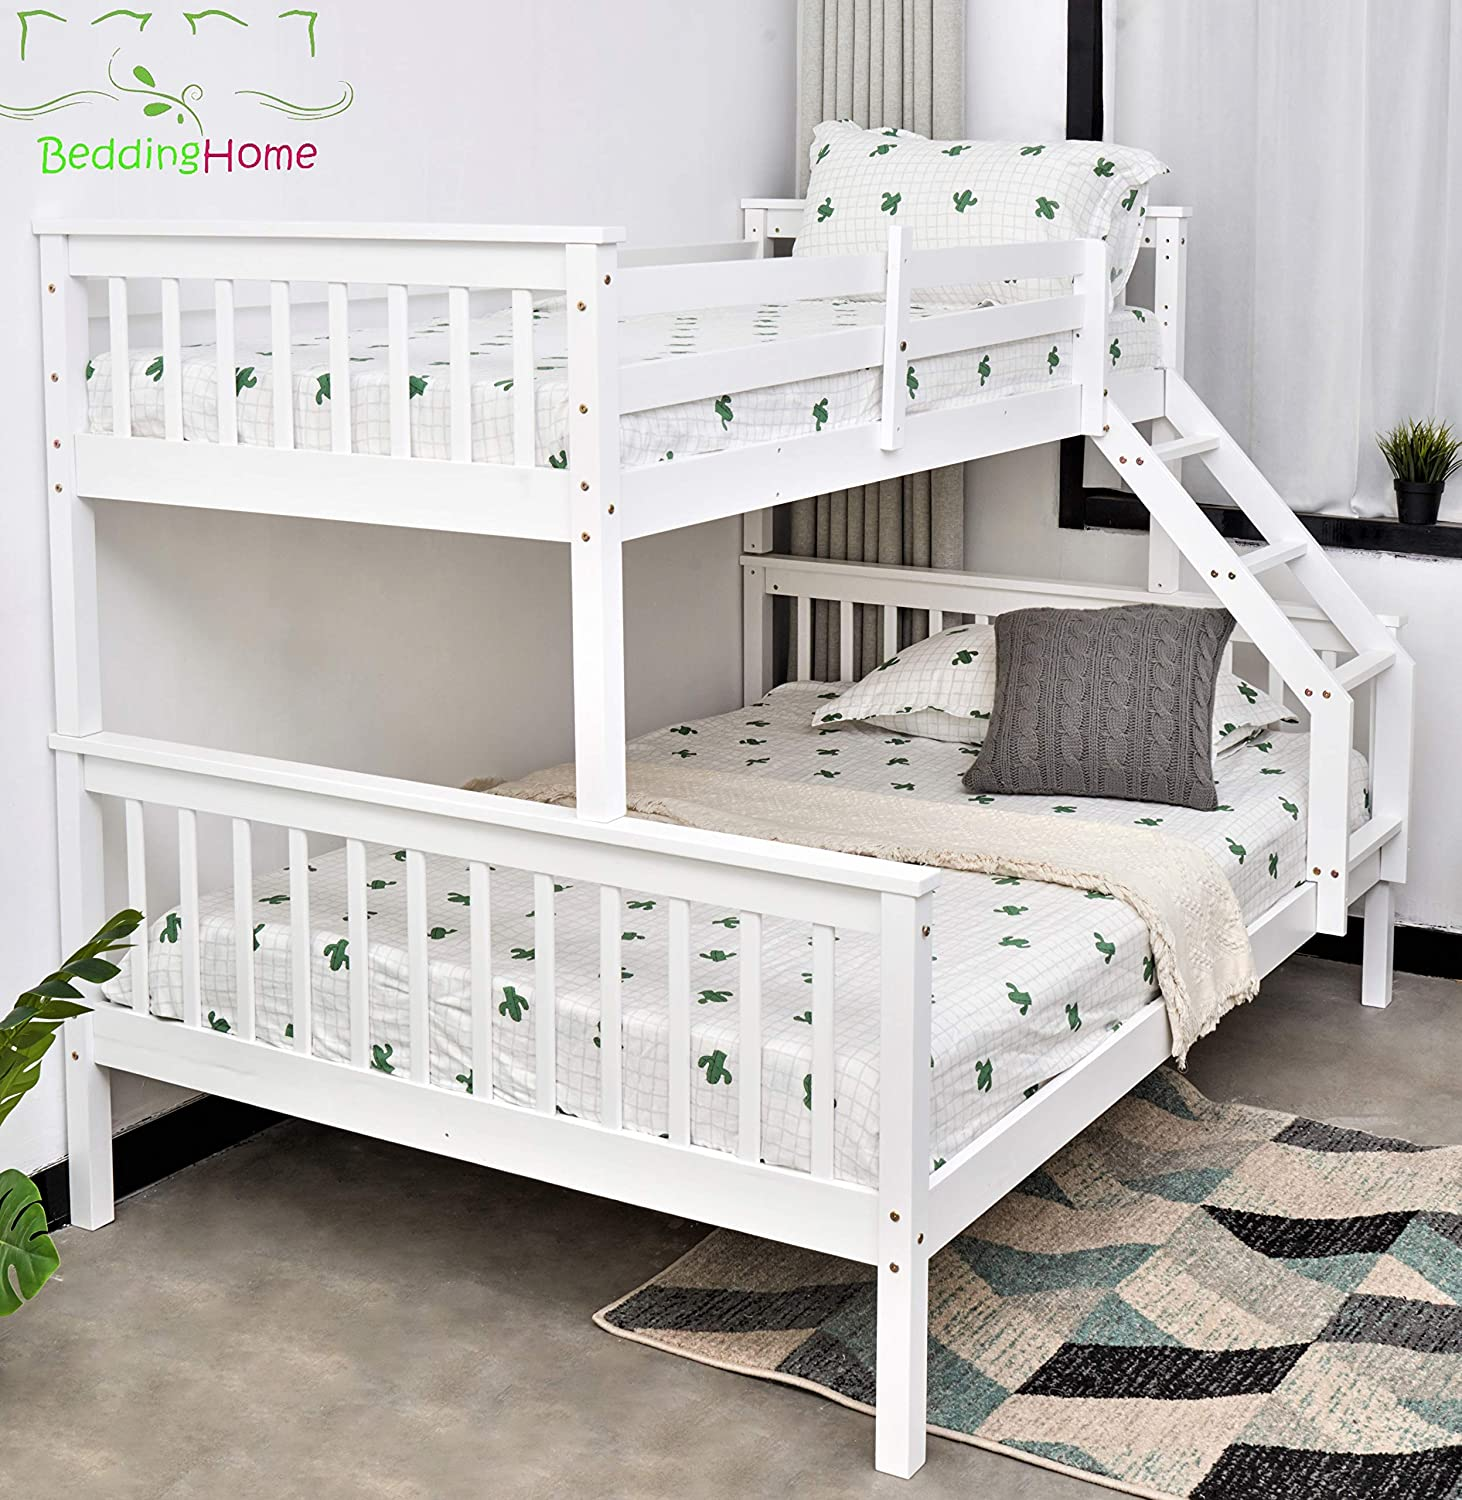 Triple Bunk Bed 3ft Single 4 6ft Double Solid Pine Wood Bunk Beds Triple Sleeper Beds For Adult And Children In Grey White White Amazon Co Uk Kitchen Home